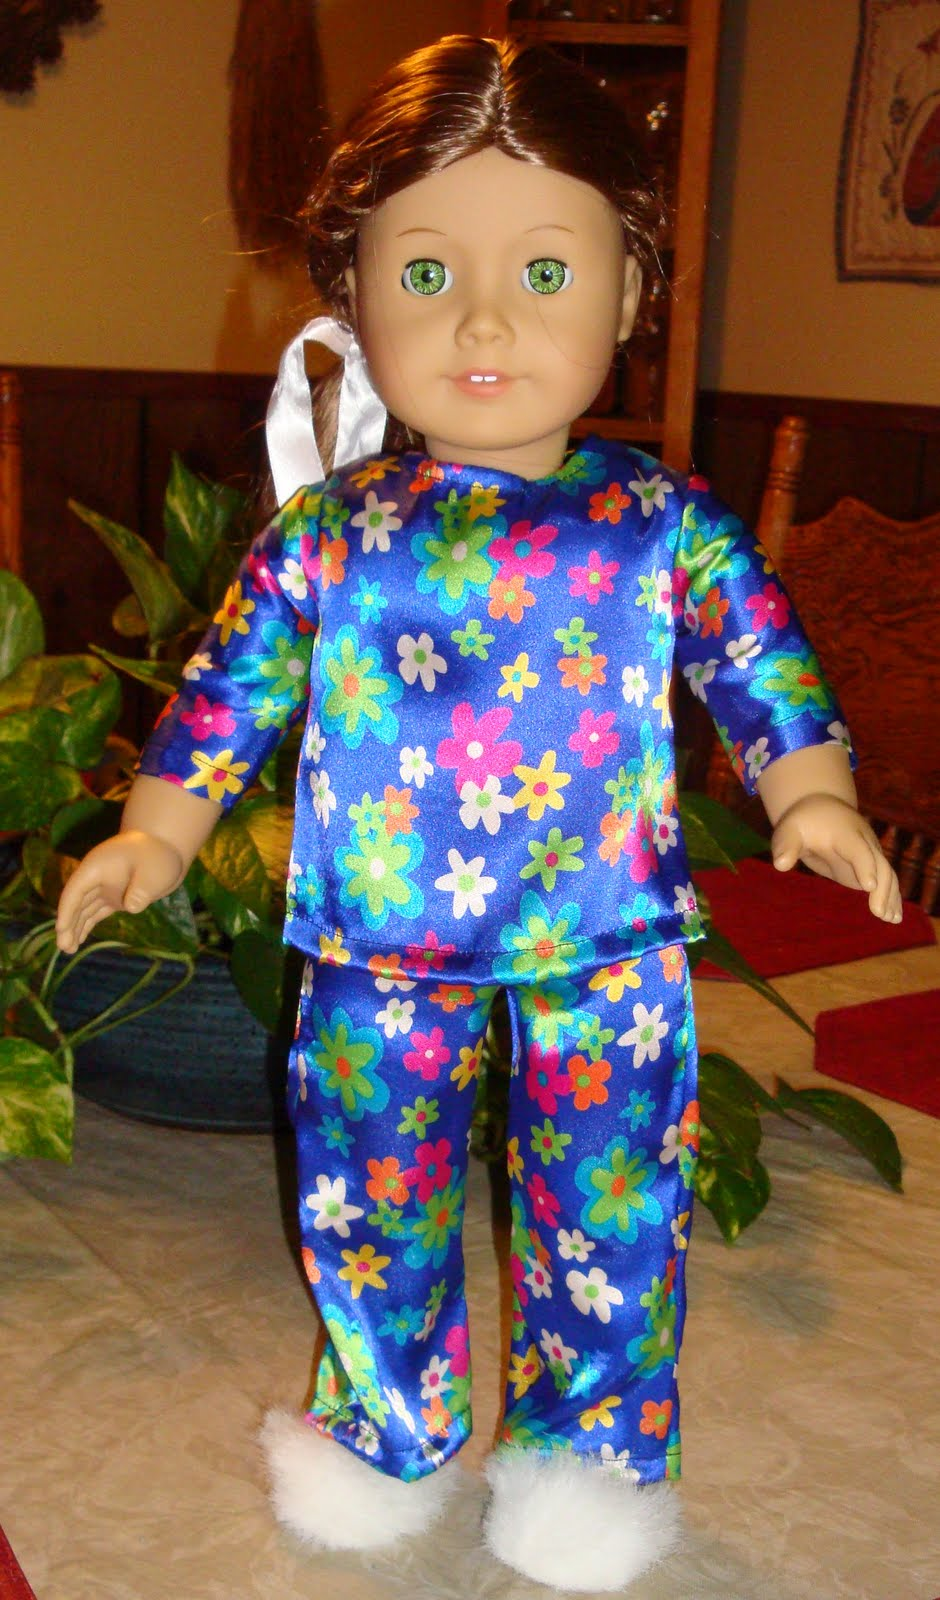 Granna's Designs: Ideas For Making Your Own 18-inch Doll